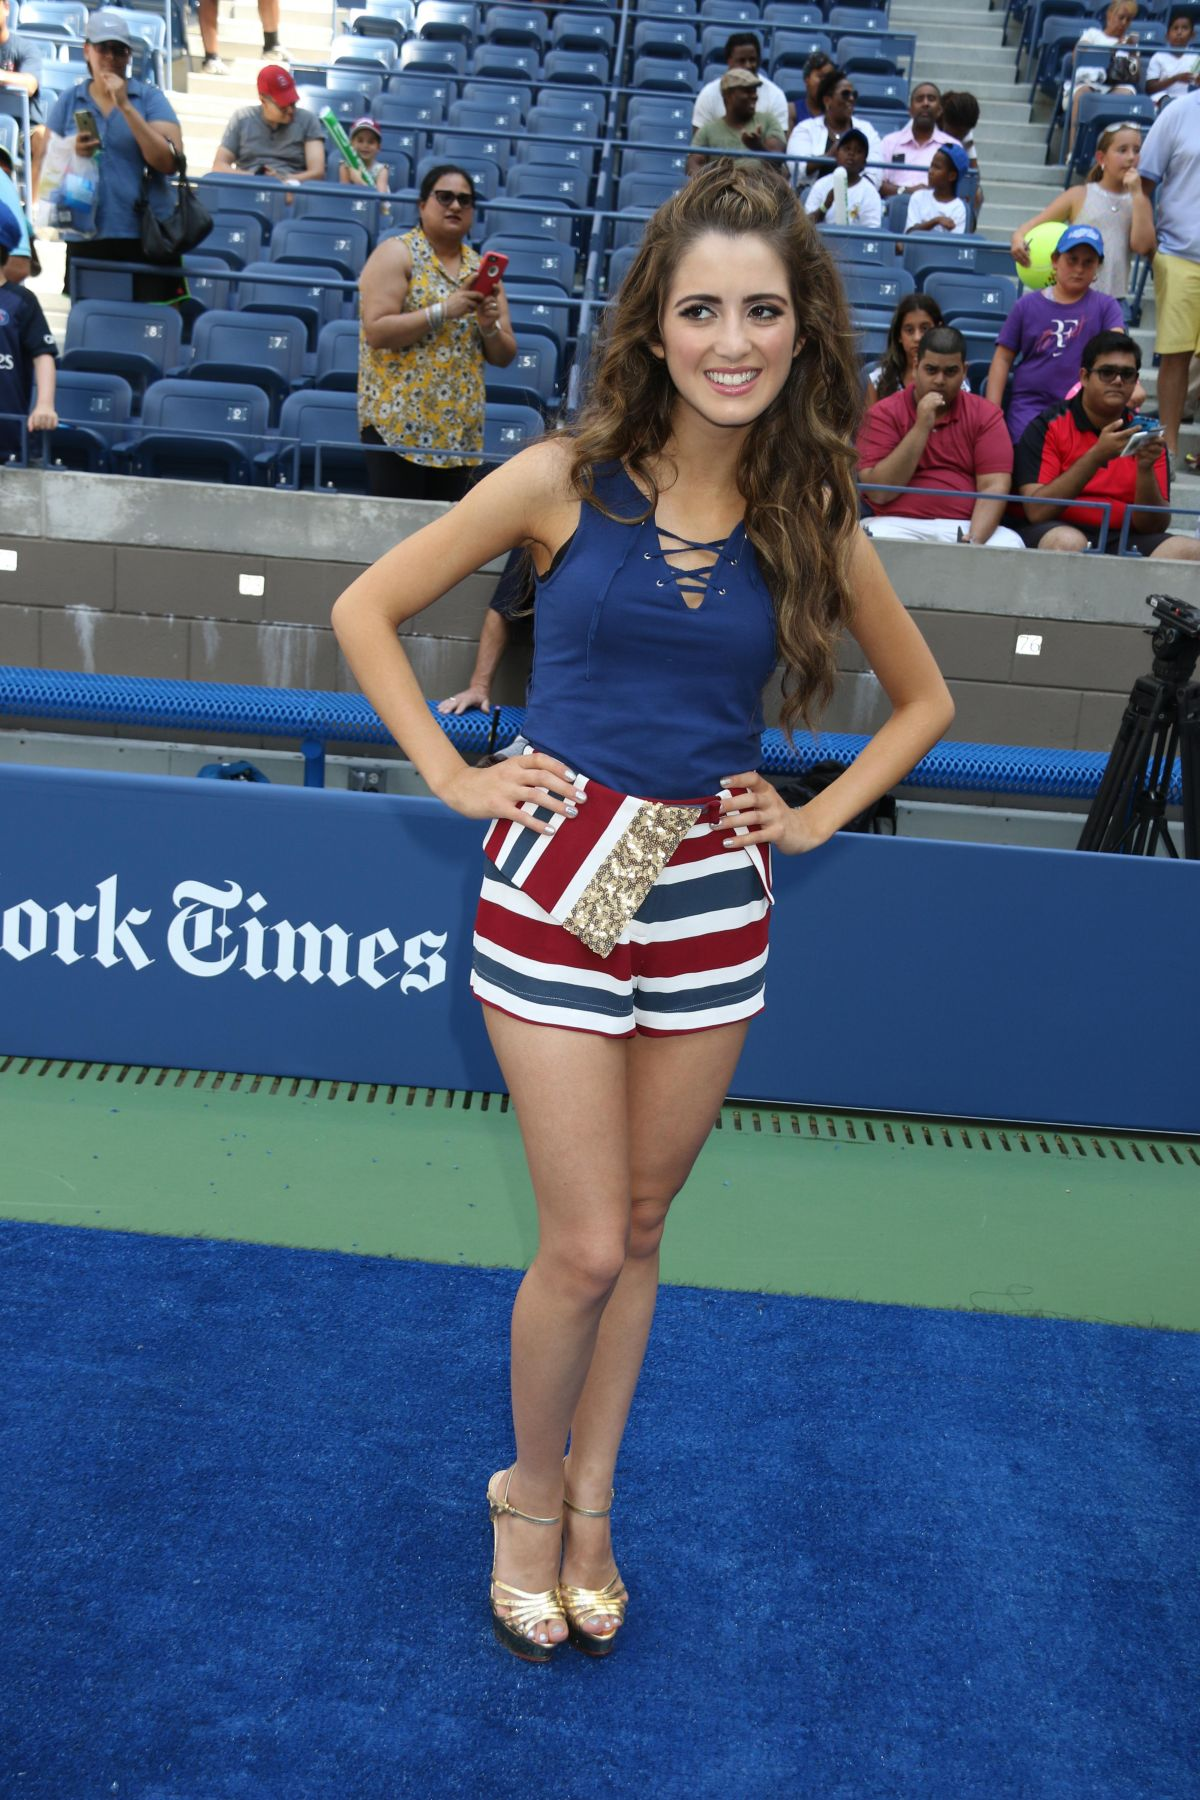 LAURA MARANO at Arthur Ashe Kid s Day in New York 08 27 2016